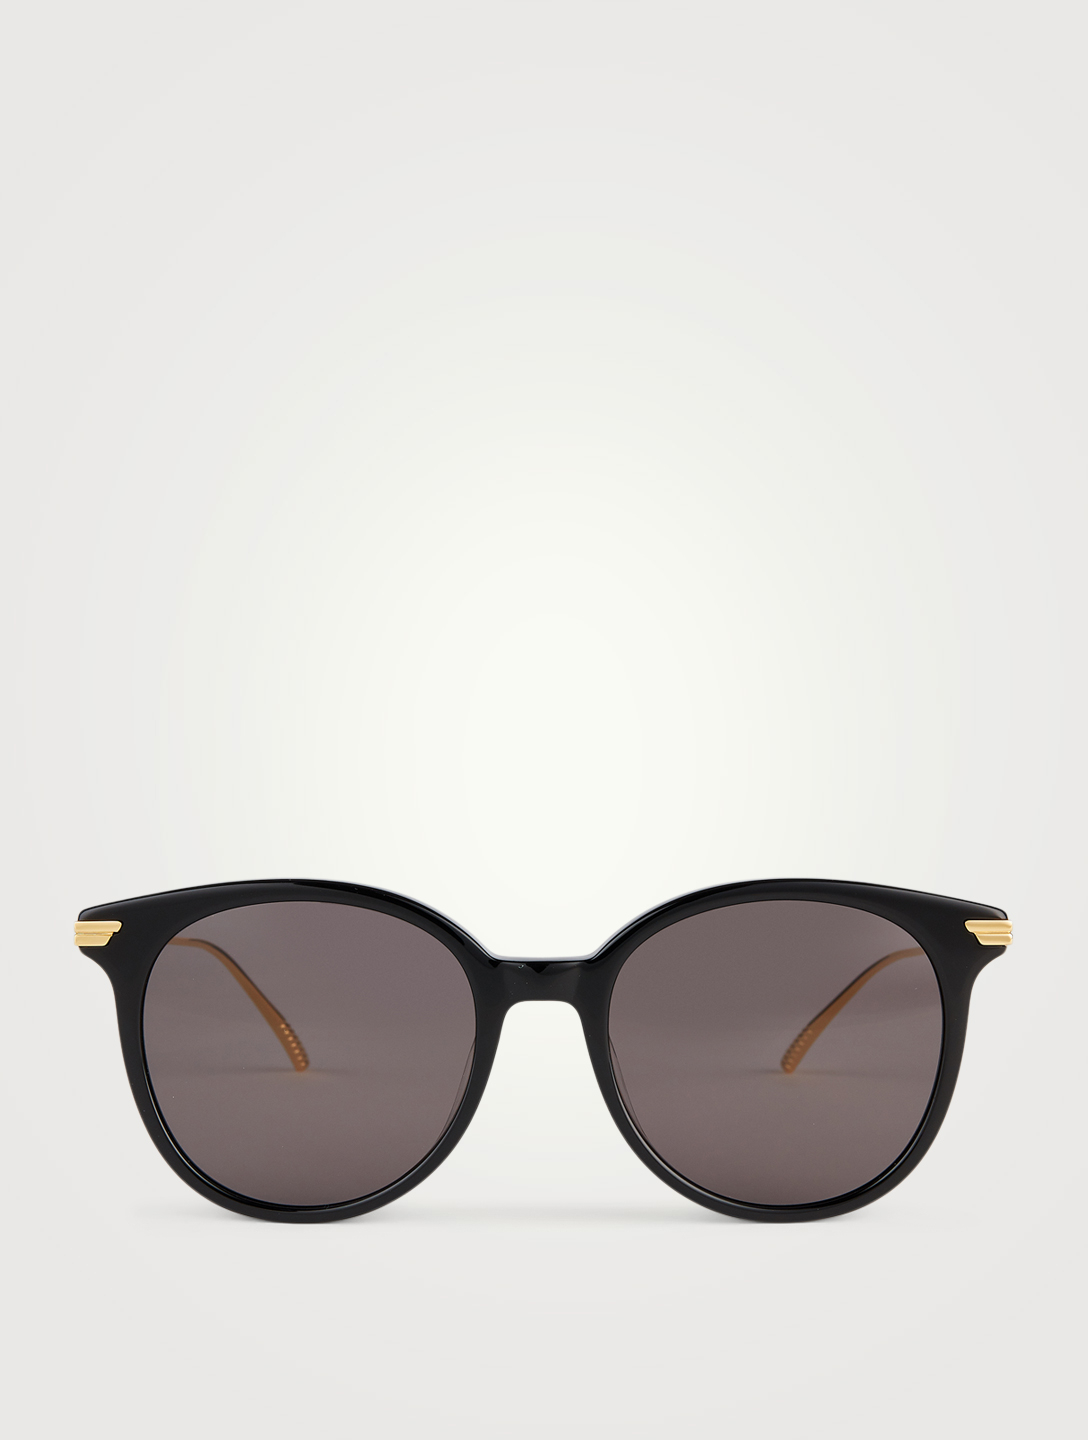 BOTTEGA VENETA Round Sunglasses Women's Black